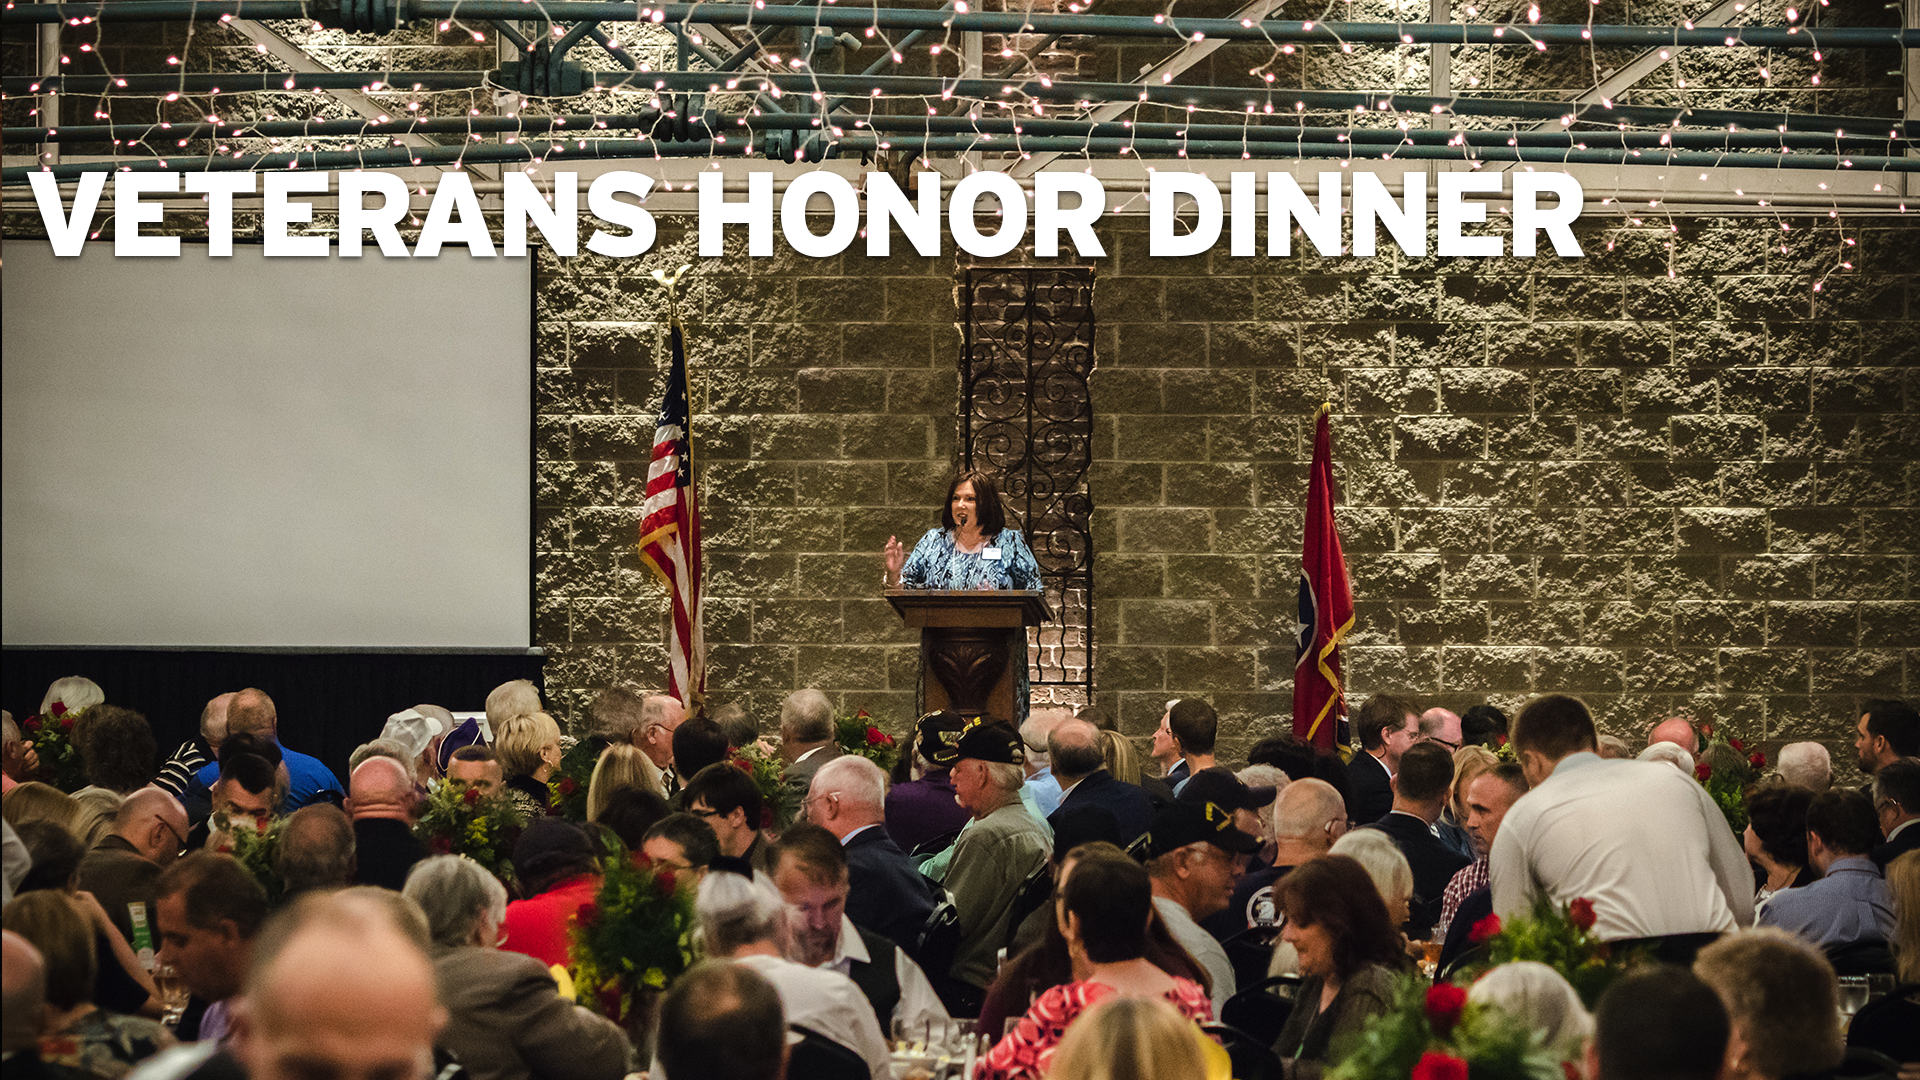 VETERANS HONOR DINNER